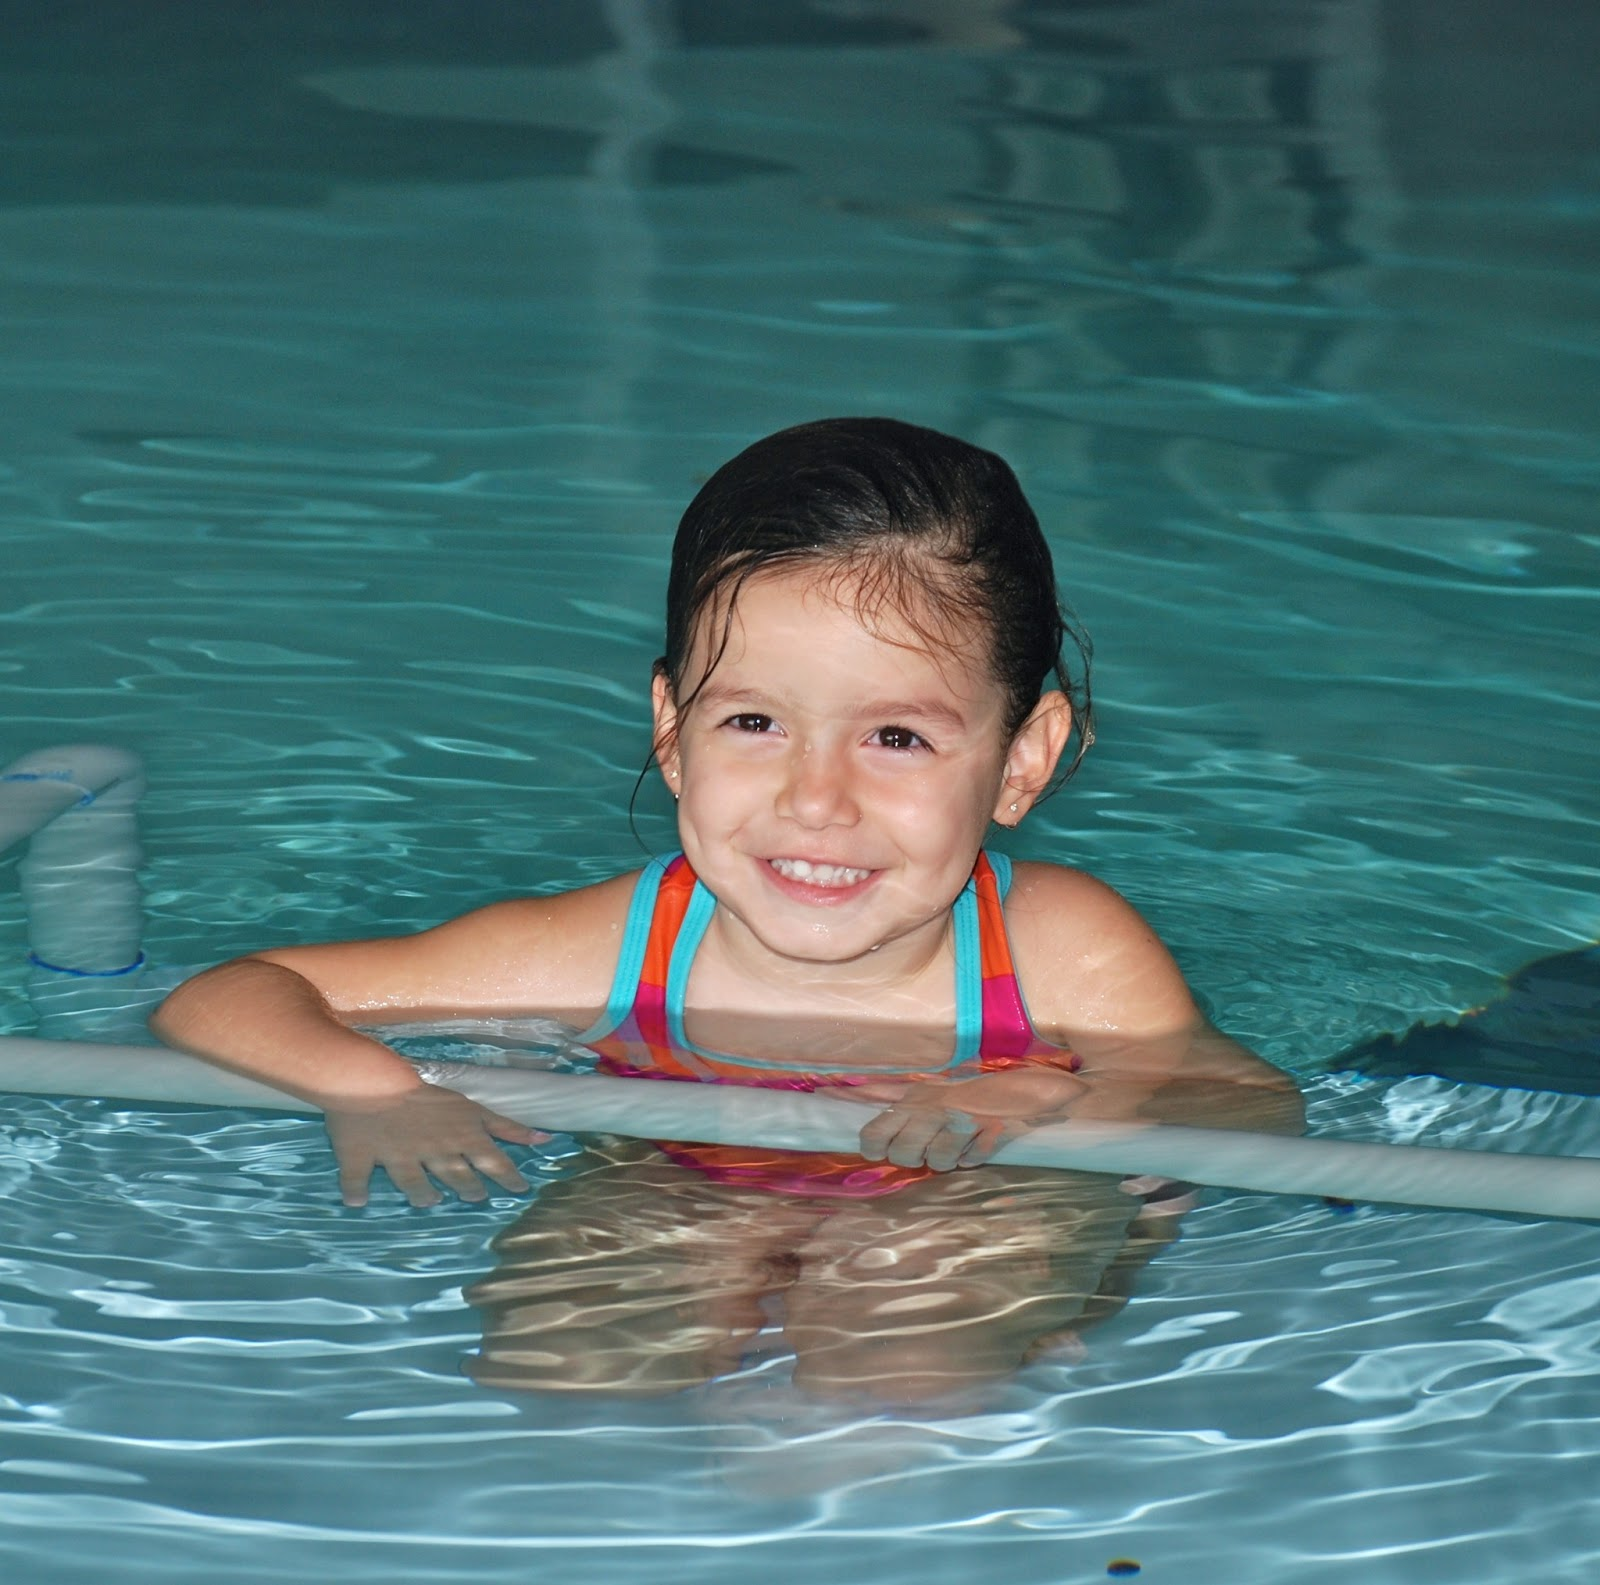 Deep Blue Swim School Swimming Lessons For Kids Near Los Alamitos And Rossmoor